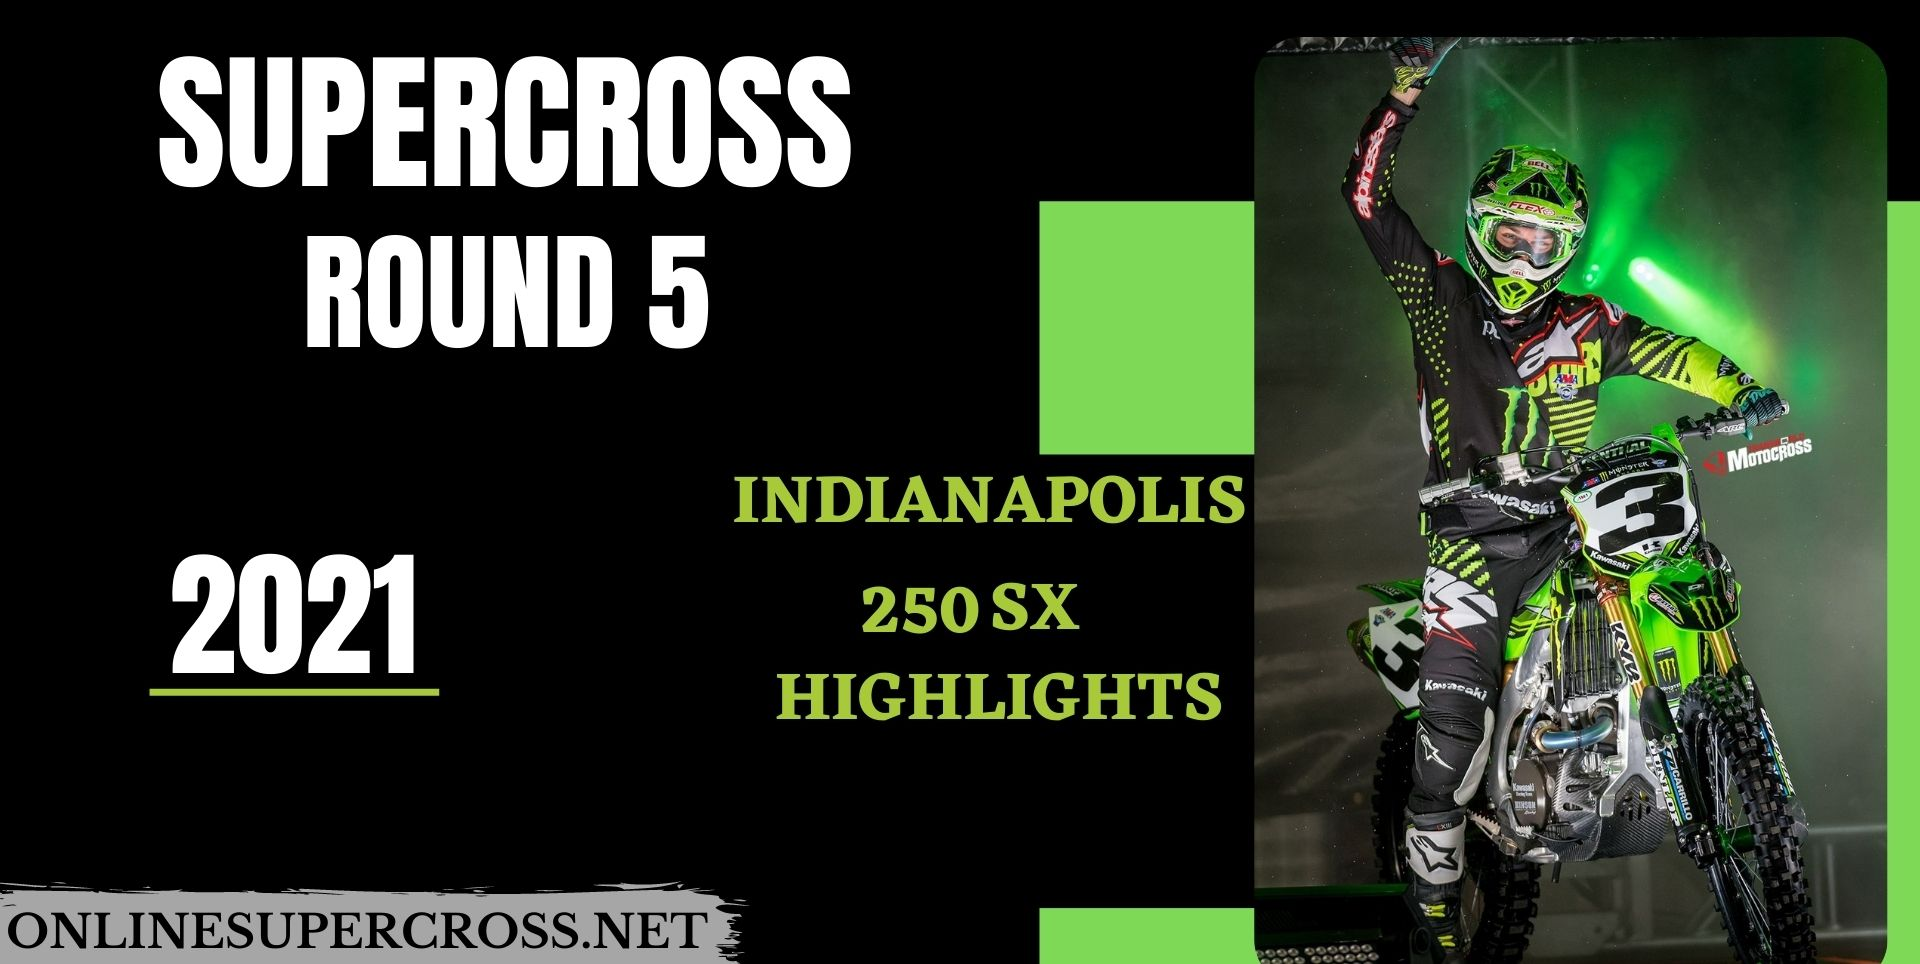 Indianapolis Round 5 Supercross 250SX Highlights 2021